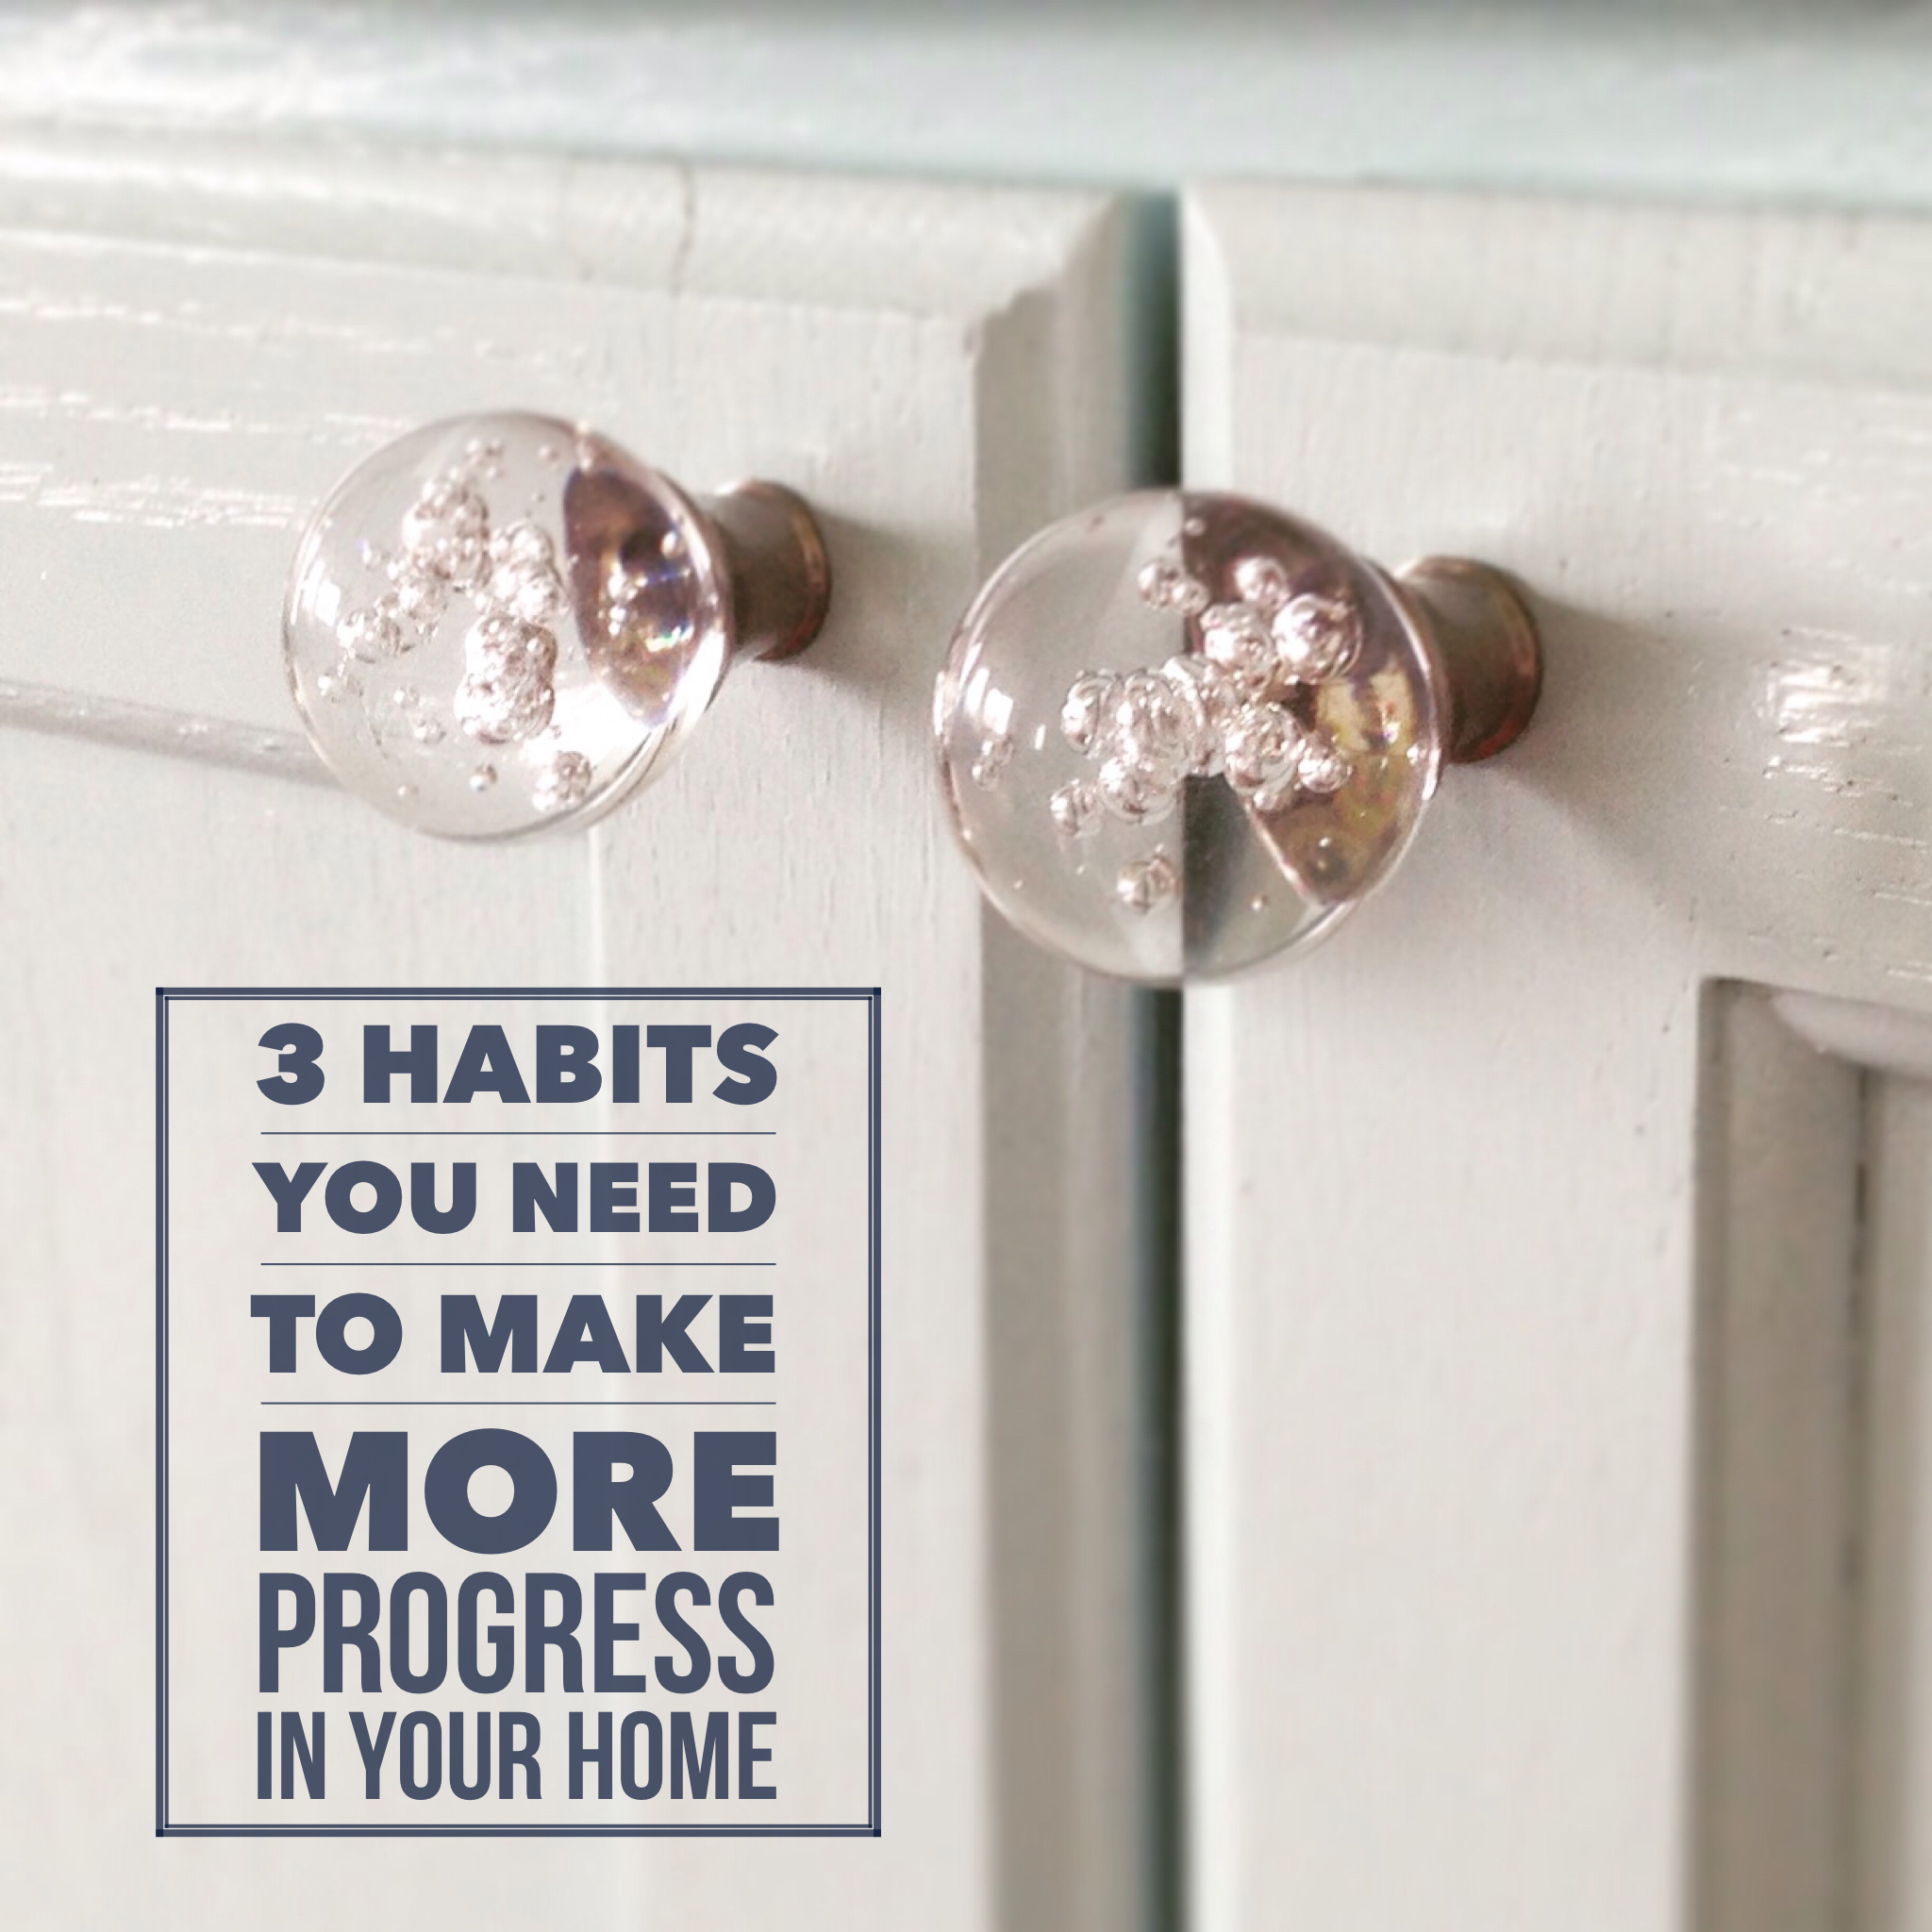 3 Habits You Need to Make More Progress in Your Home